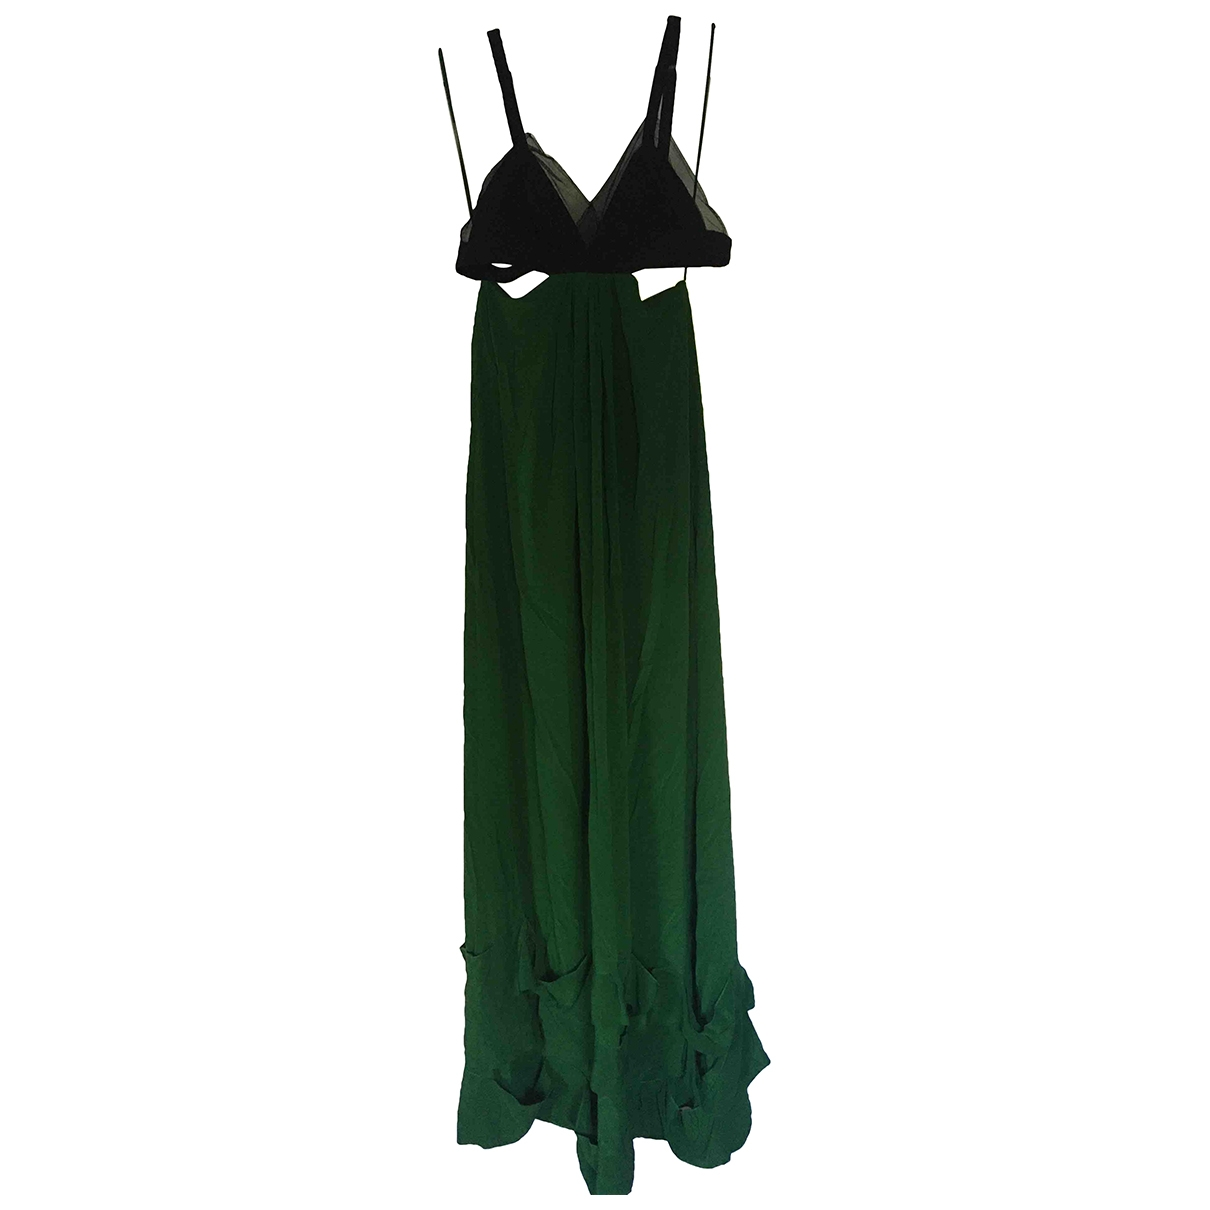 Sonia Rykiel \N Green Silk dress for Women 38 FR